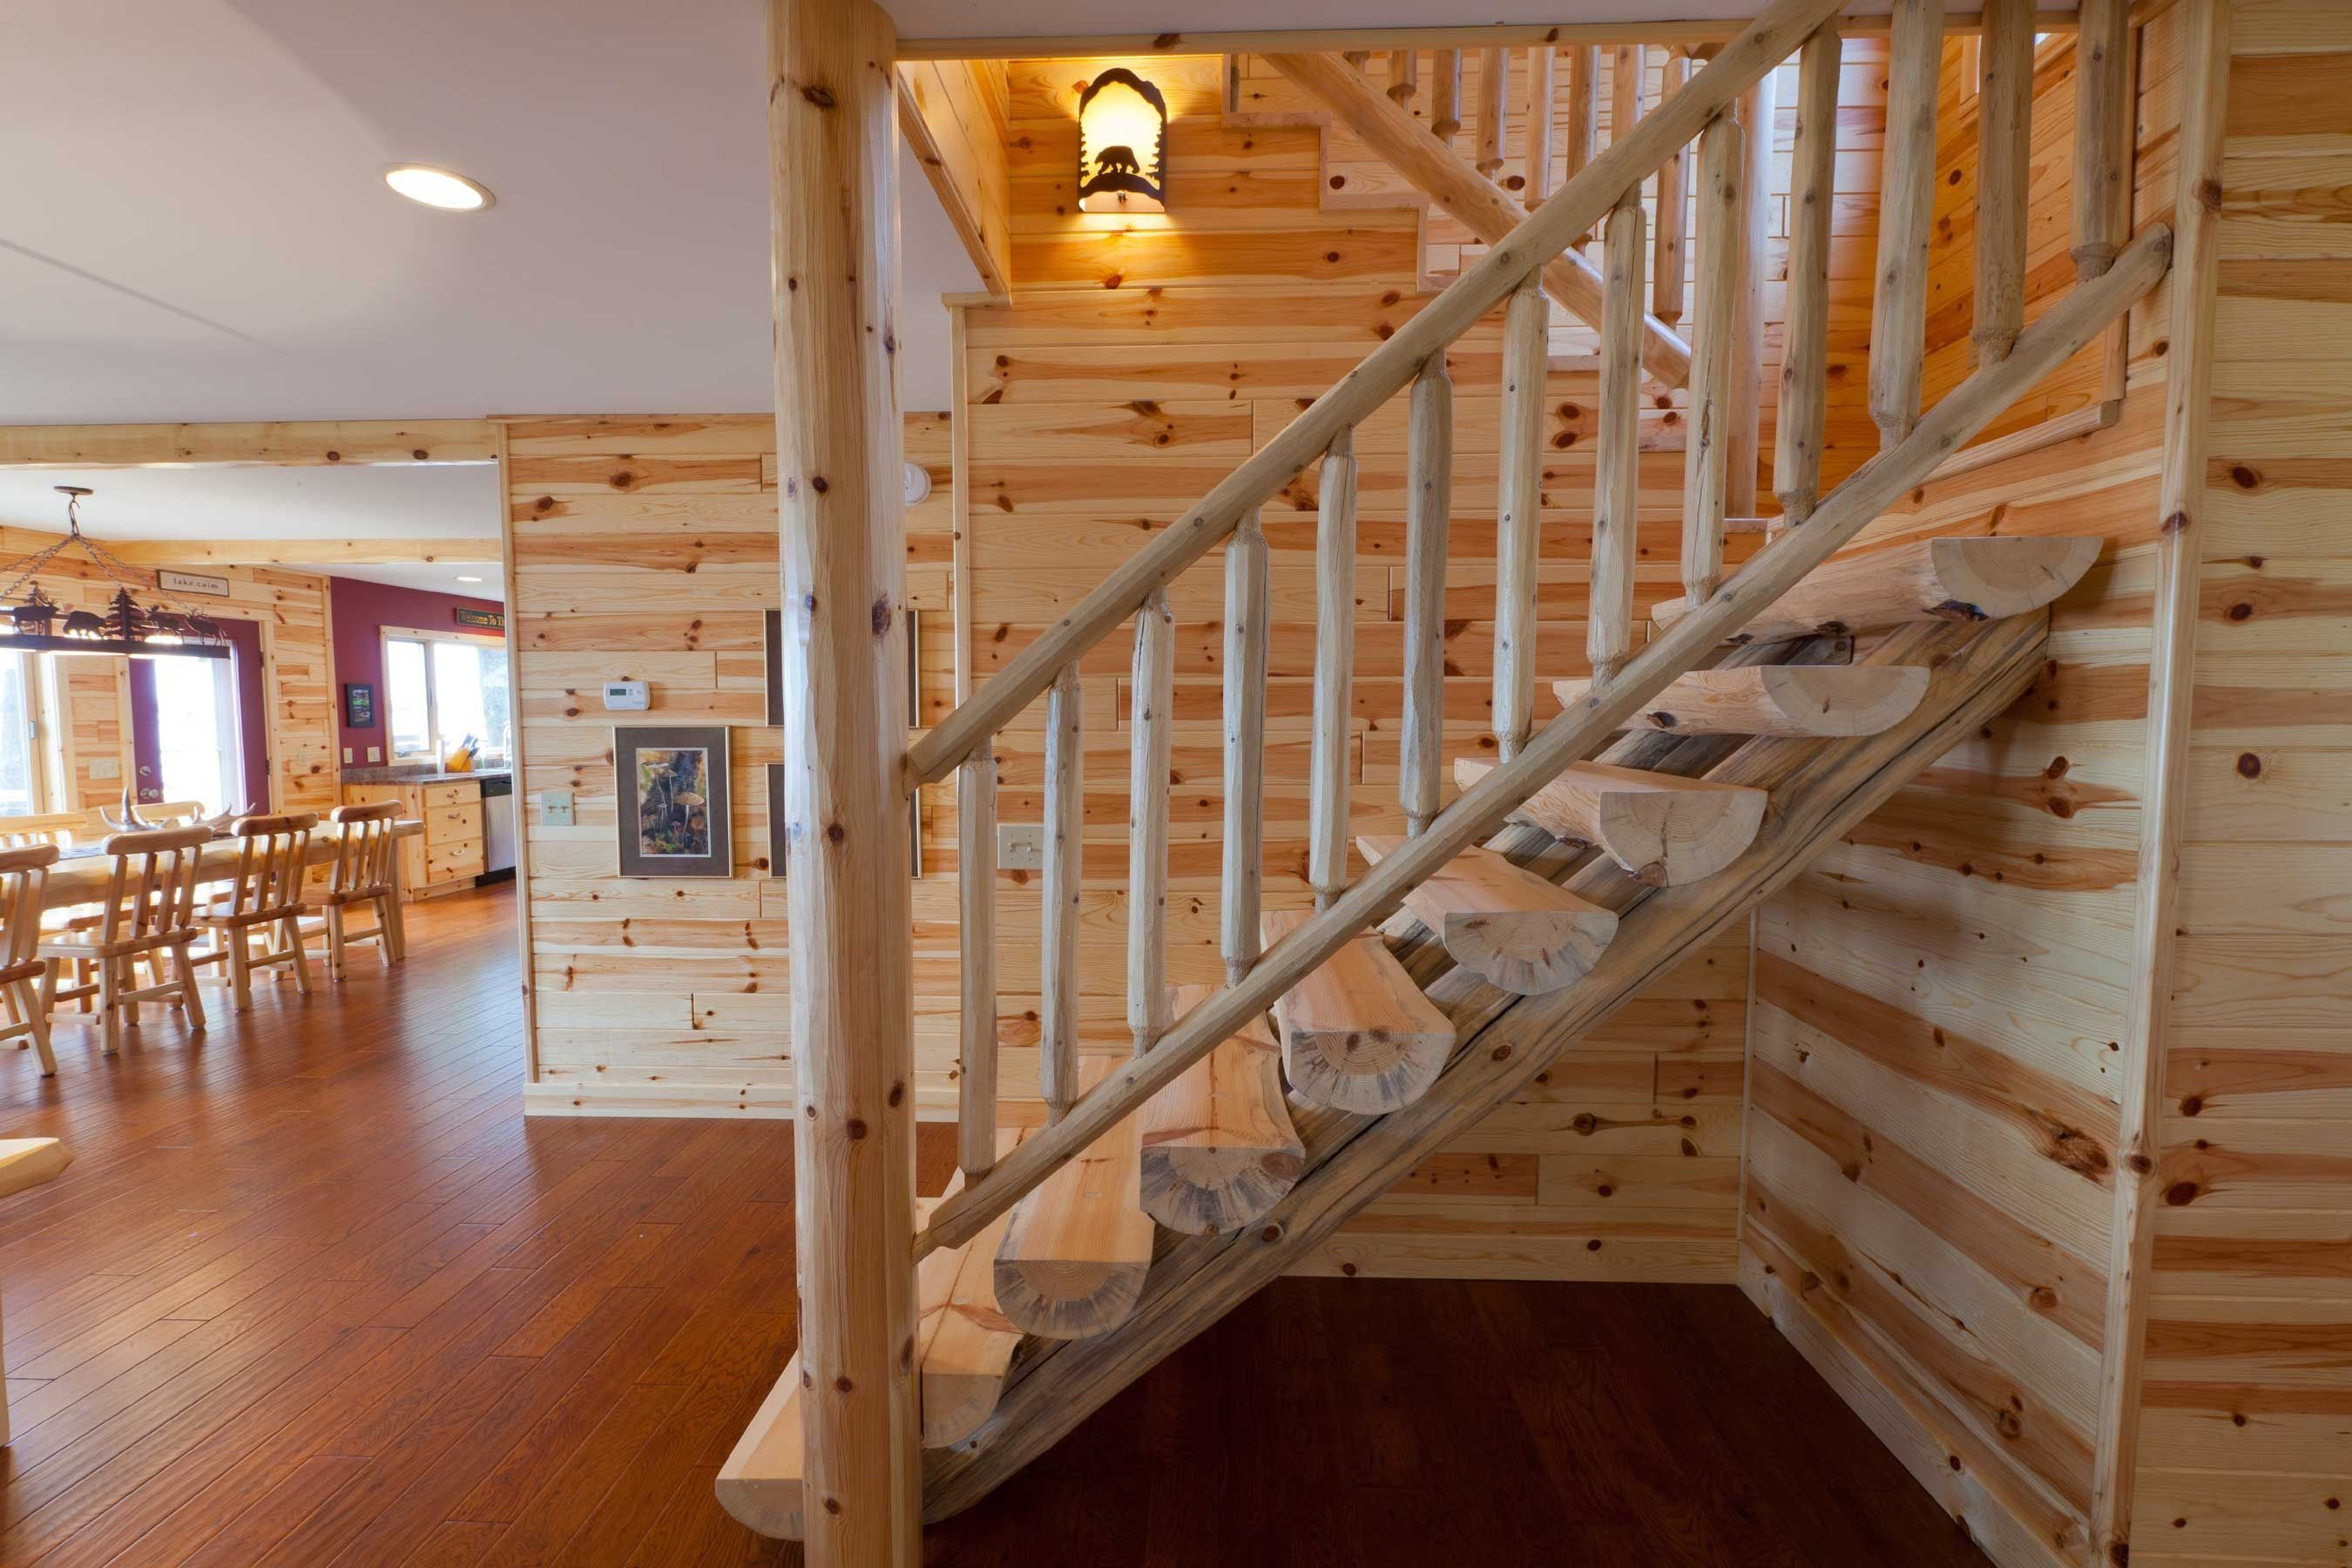 Explore Knotty Pine Paneling, Interior Walls And More